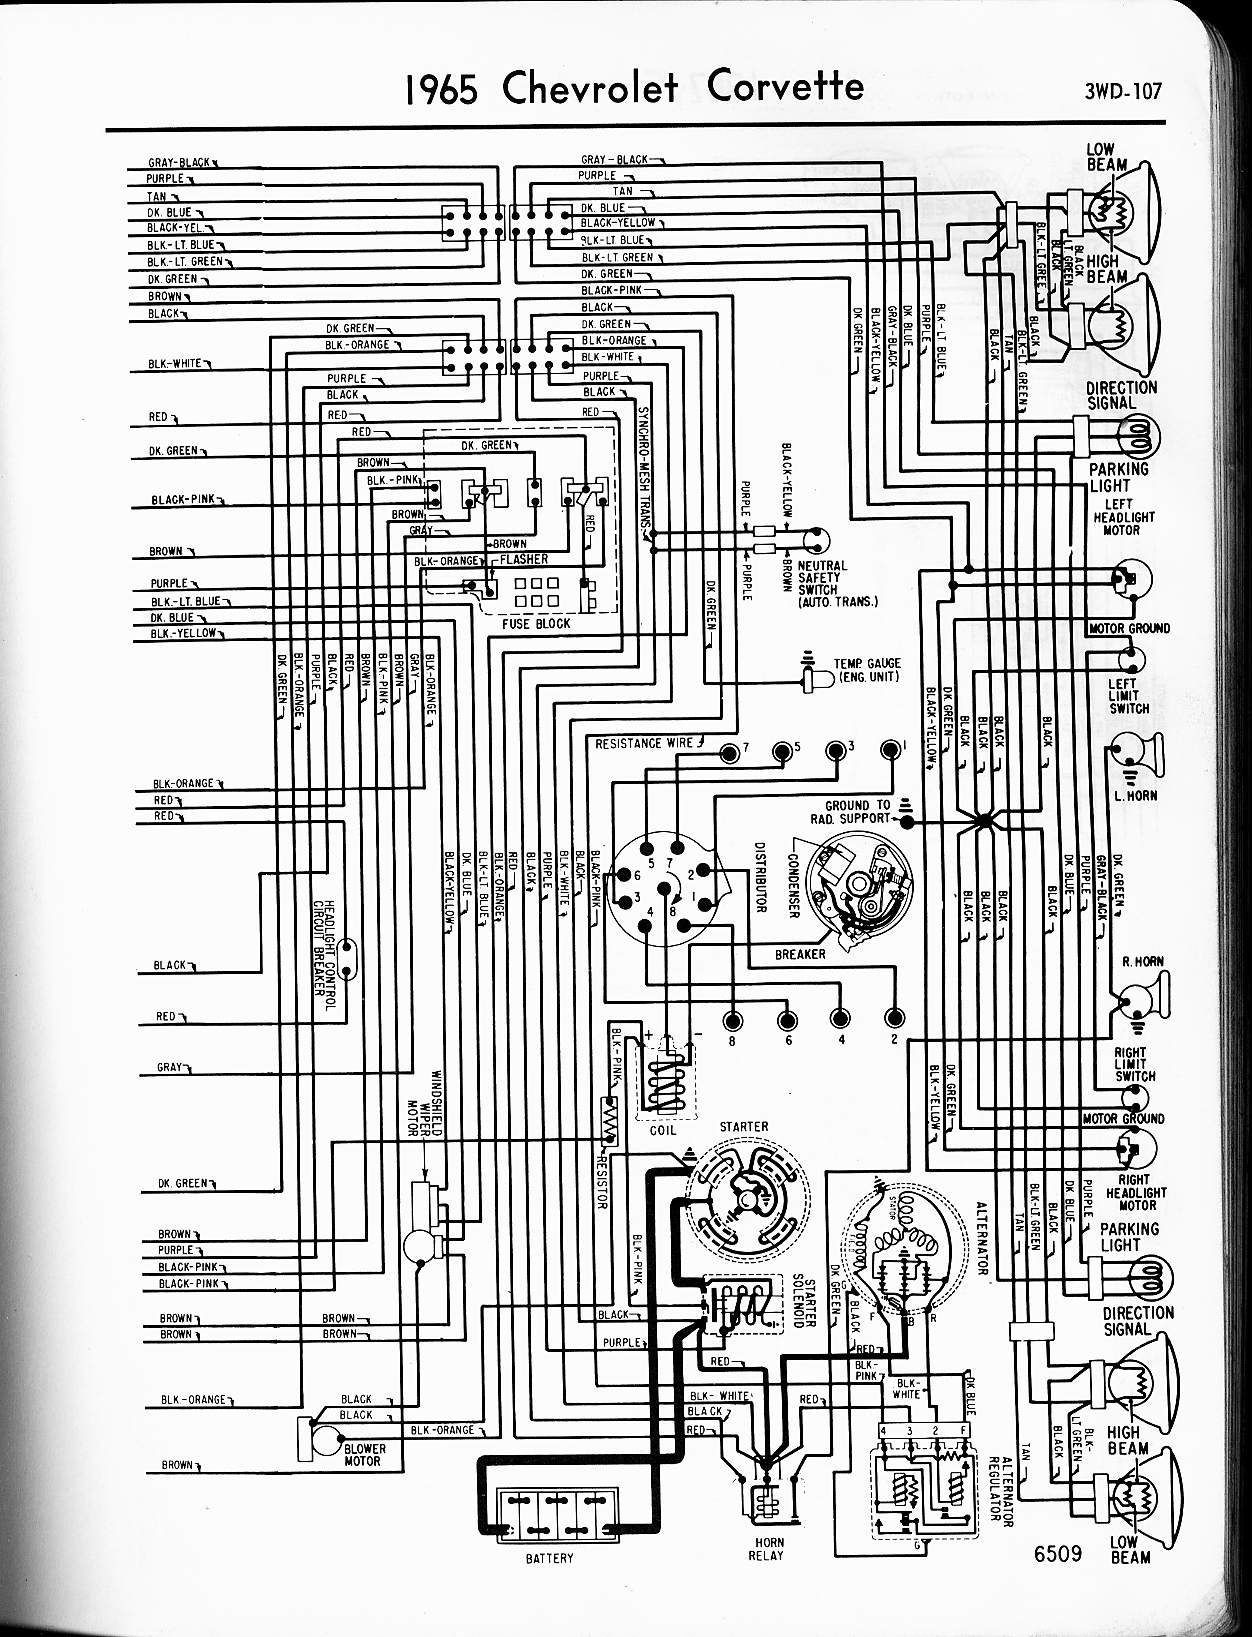 1963 Corvette Wiring Diagram Another Blog About 2007 C6 Diagrams 76 Stingray Rh Twosoutherndivas Co Wiper